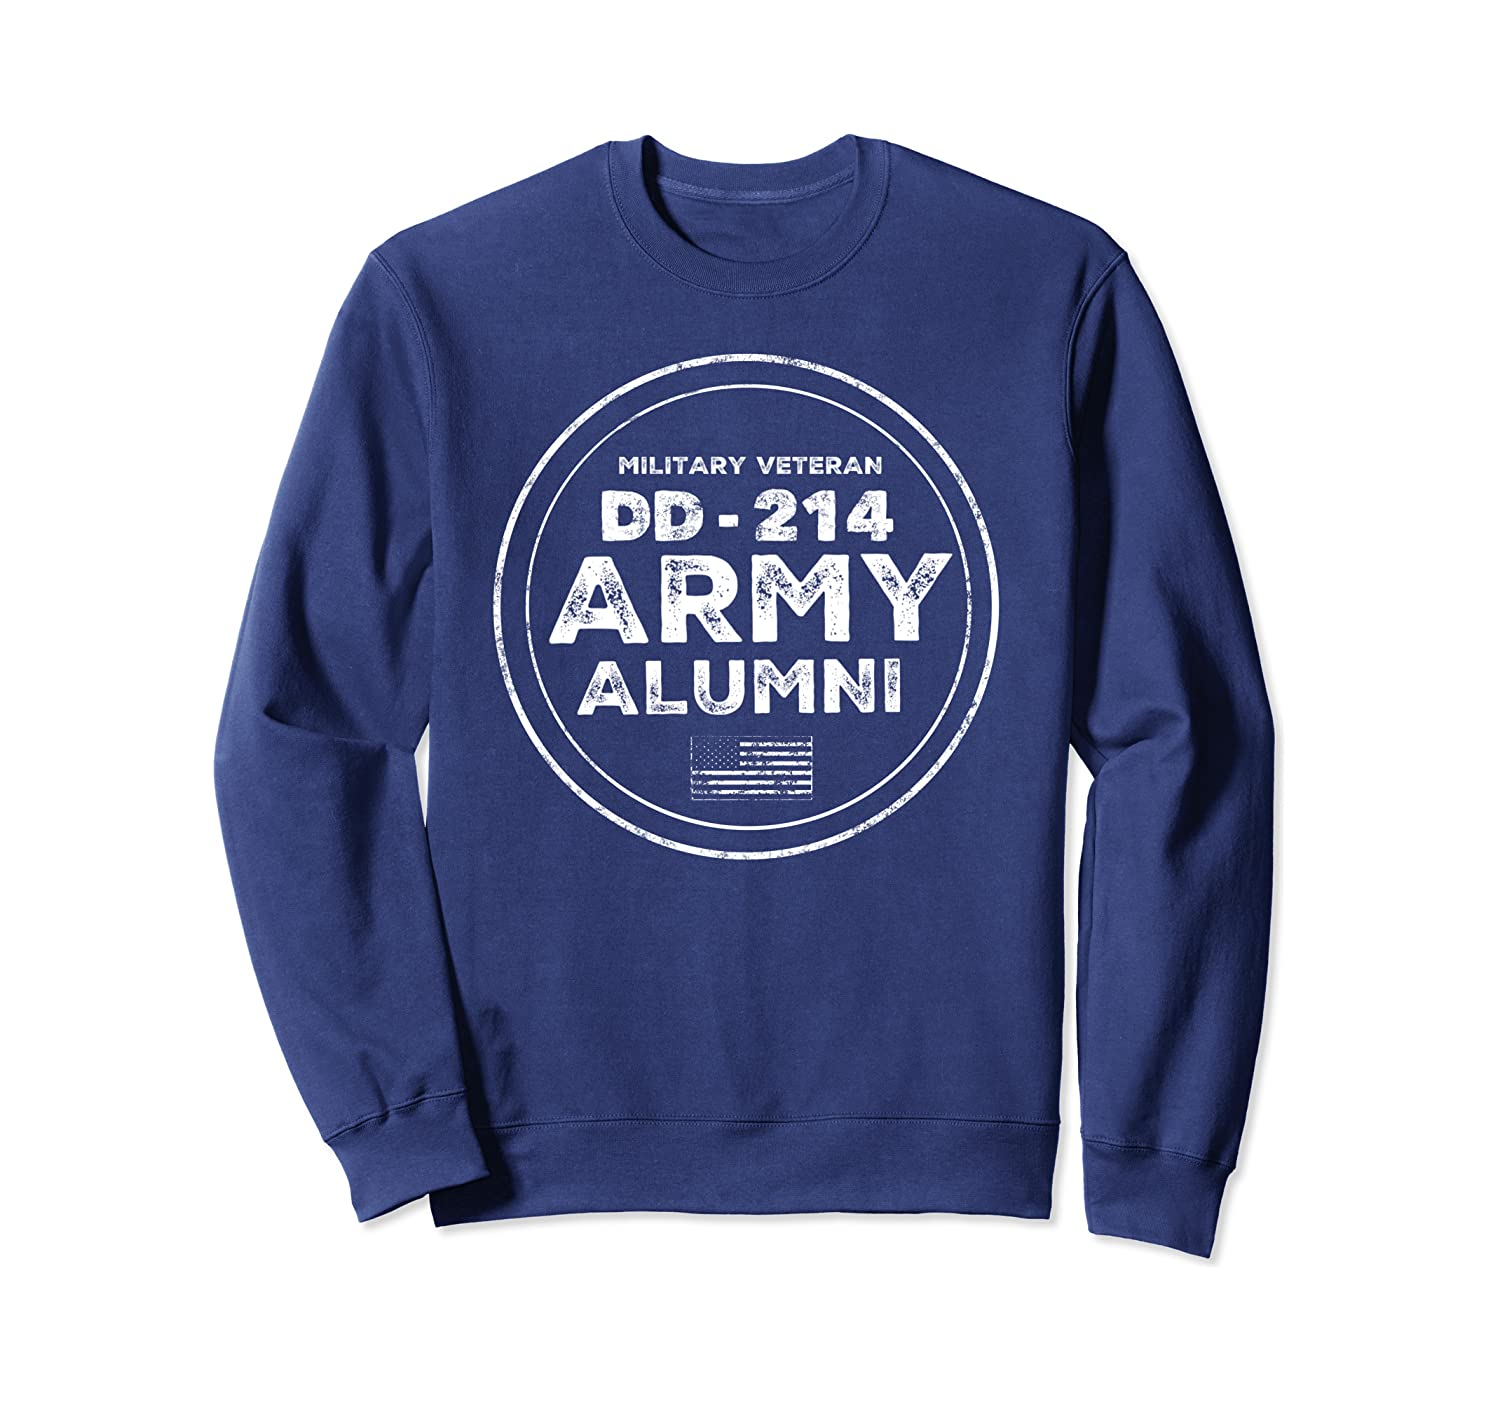 DD-214 US Alumni Army Veterans Flag in Vintage Sweatshirt